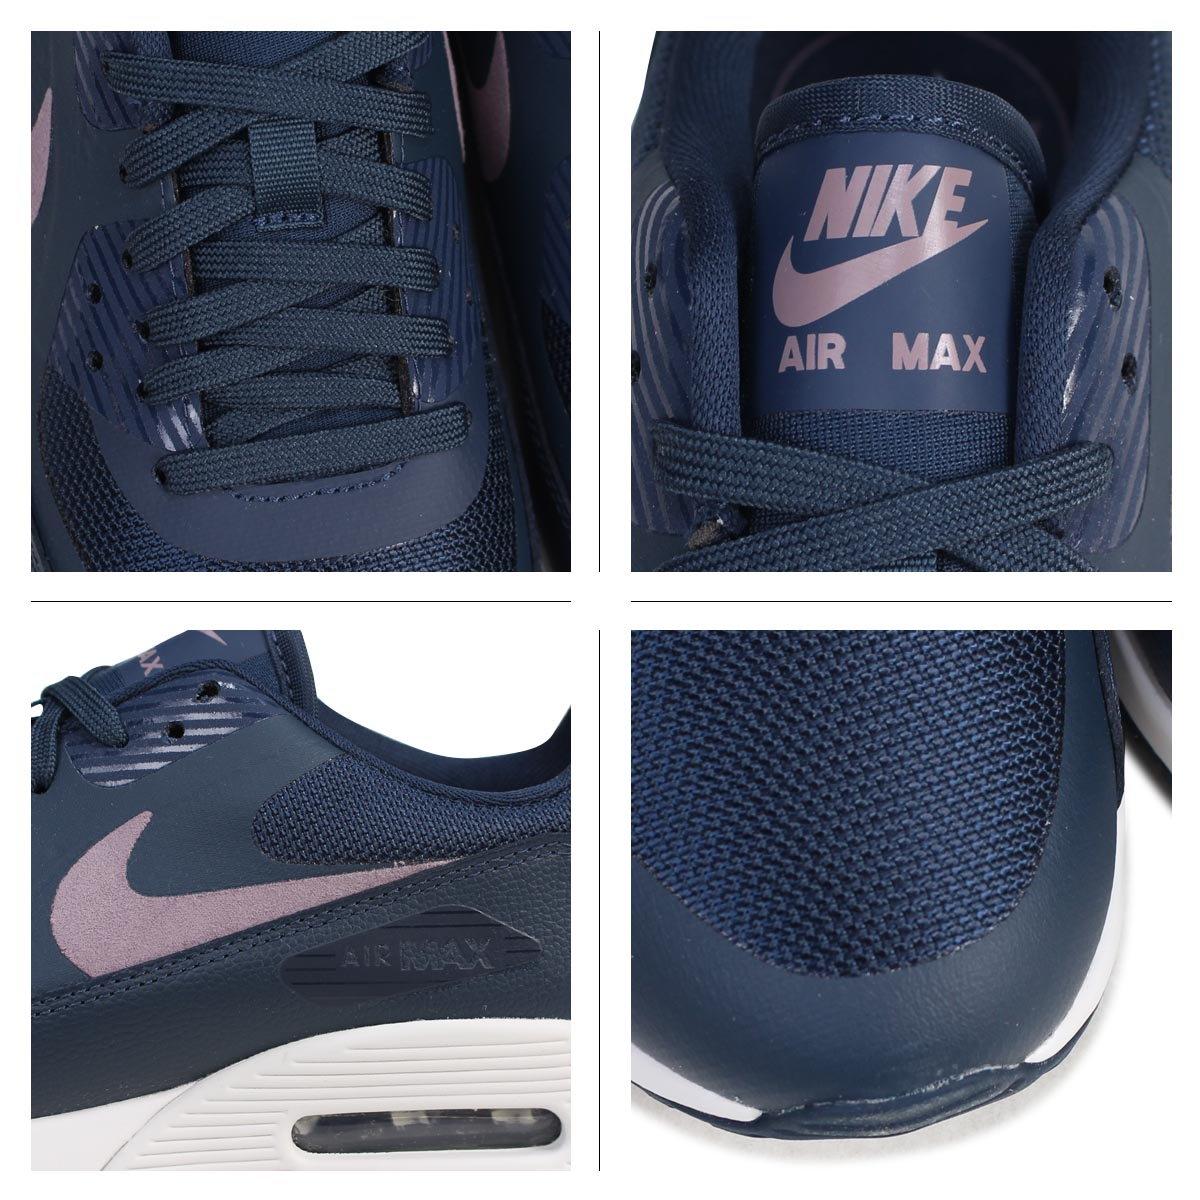 Nike NIKE Air Max 90 ultra Lady's sneakers WMNS AIR MAX 90 ULTRA 2.0 881,106 401 navy